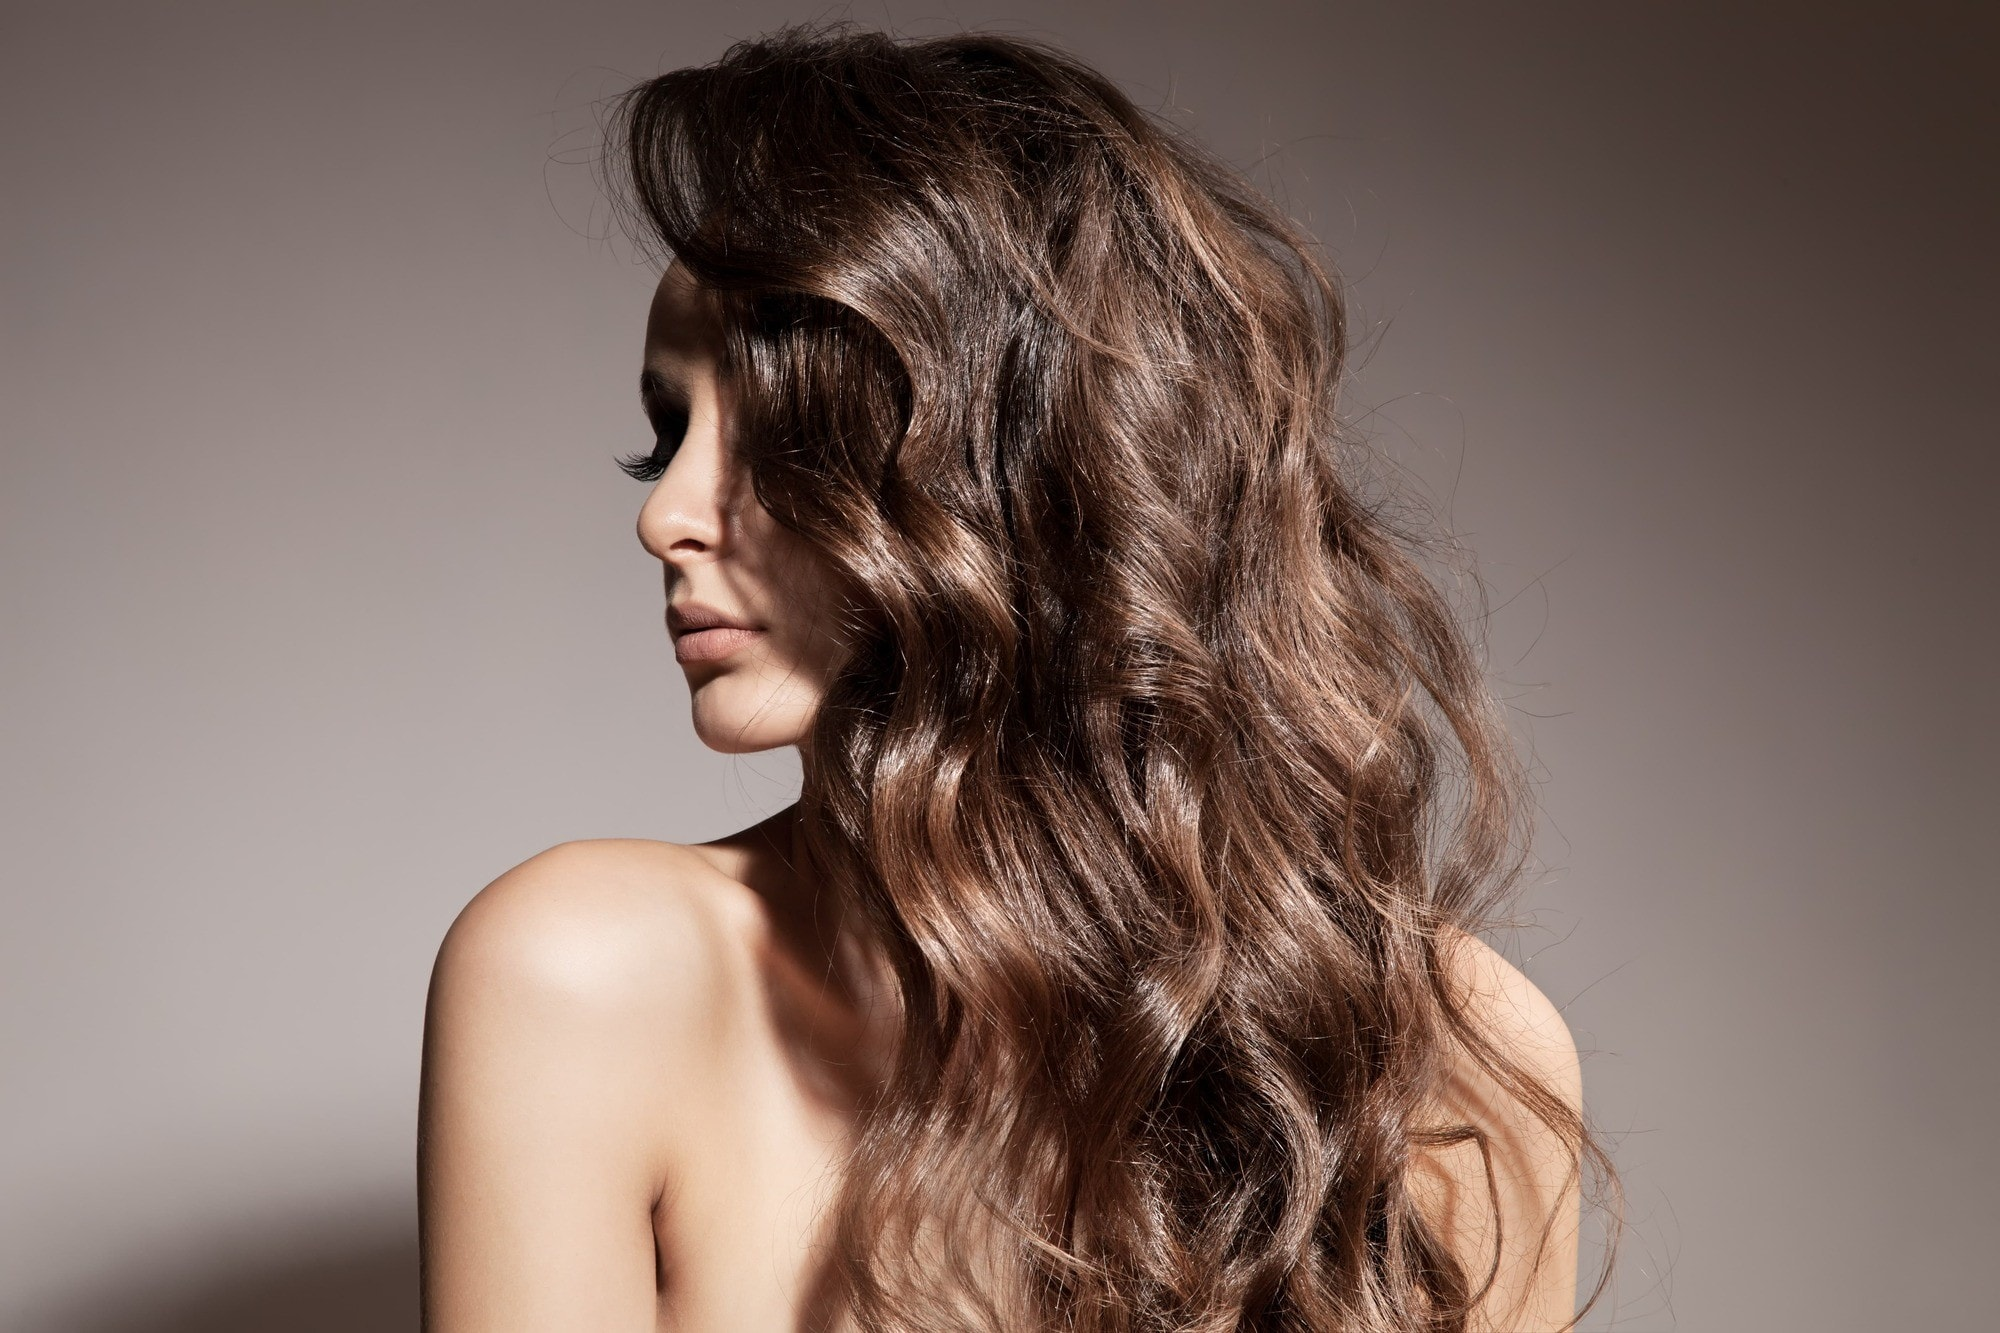 How to use a curling wand: Brunette model with long curly hair, worn to one side